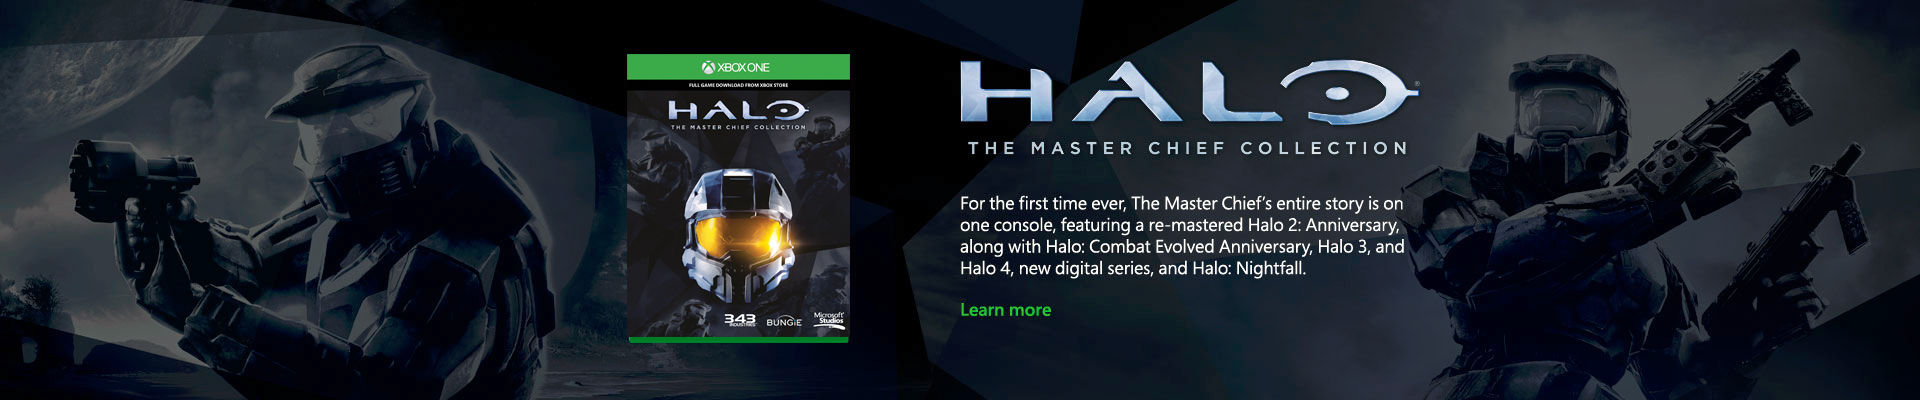 Xbox One Halo Master Chief Collection banner